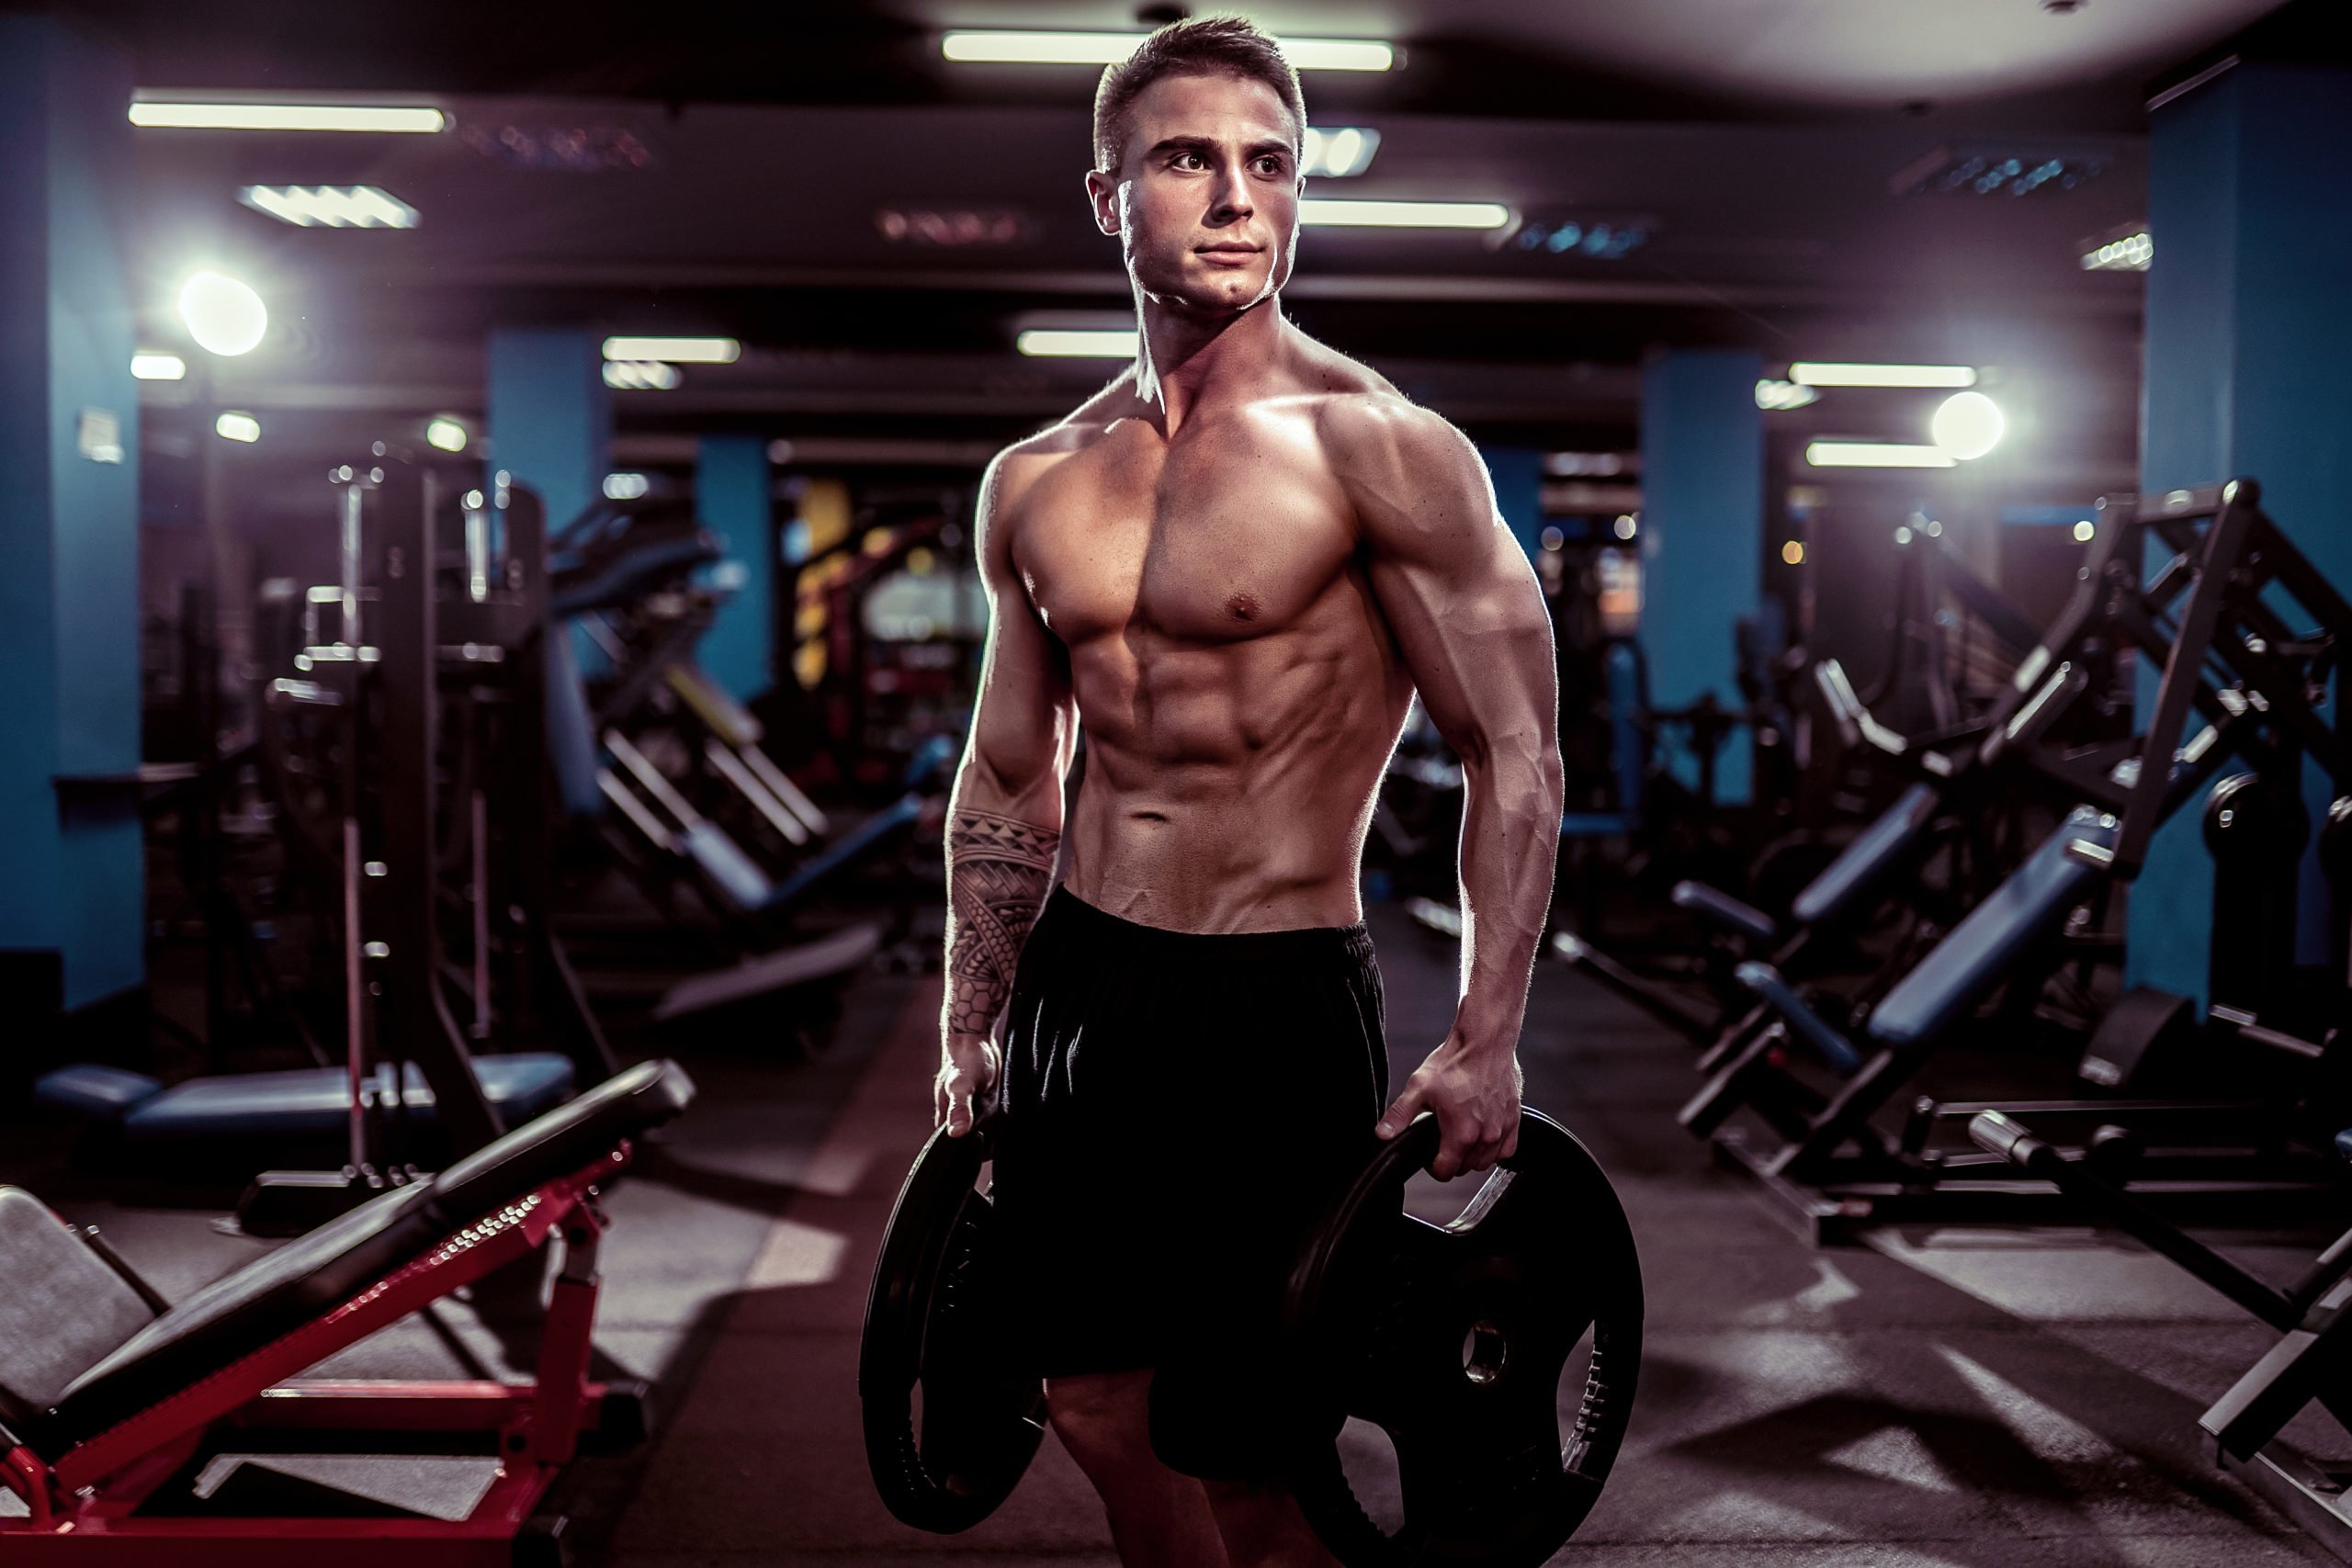 The 5 Greatest Isolation Exercises for an Aesthetic Physique